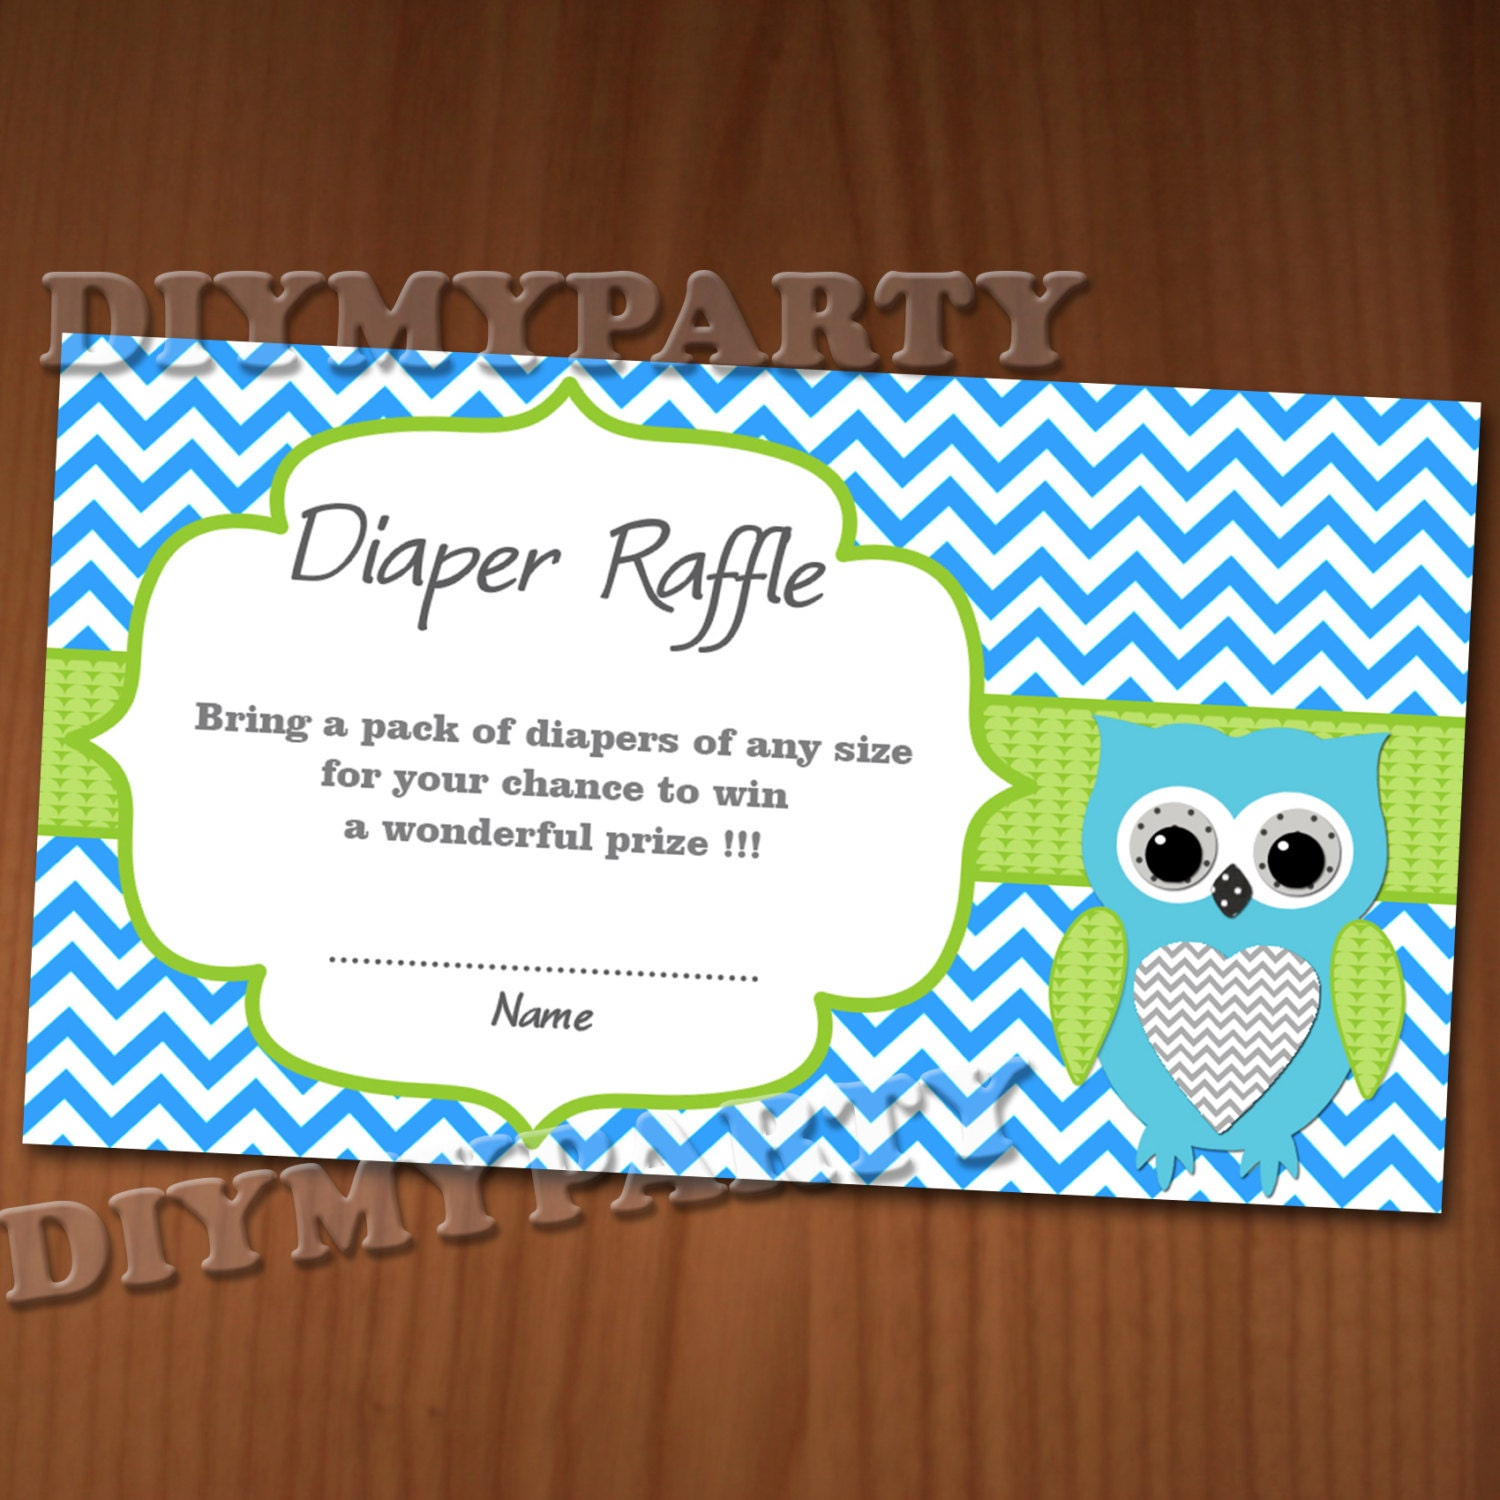 Baby Shower Diaper Raffle: Owl Baby Shower Diaper Raffle Ticket Diaper Raffle Cards